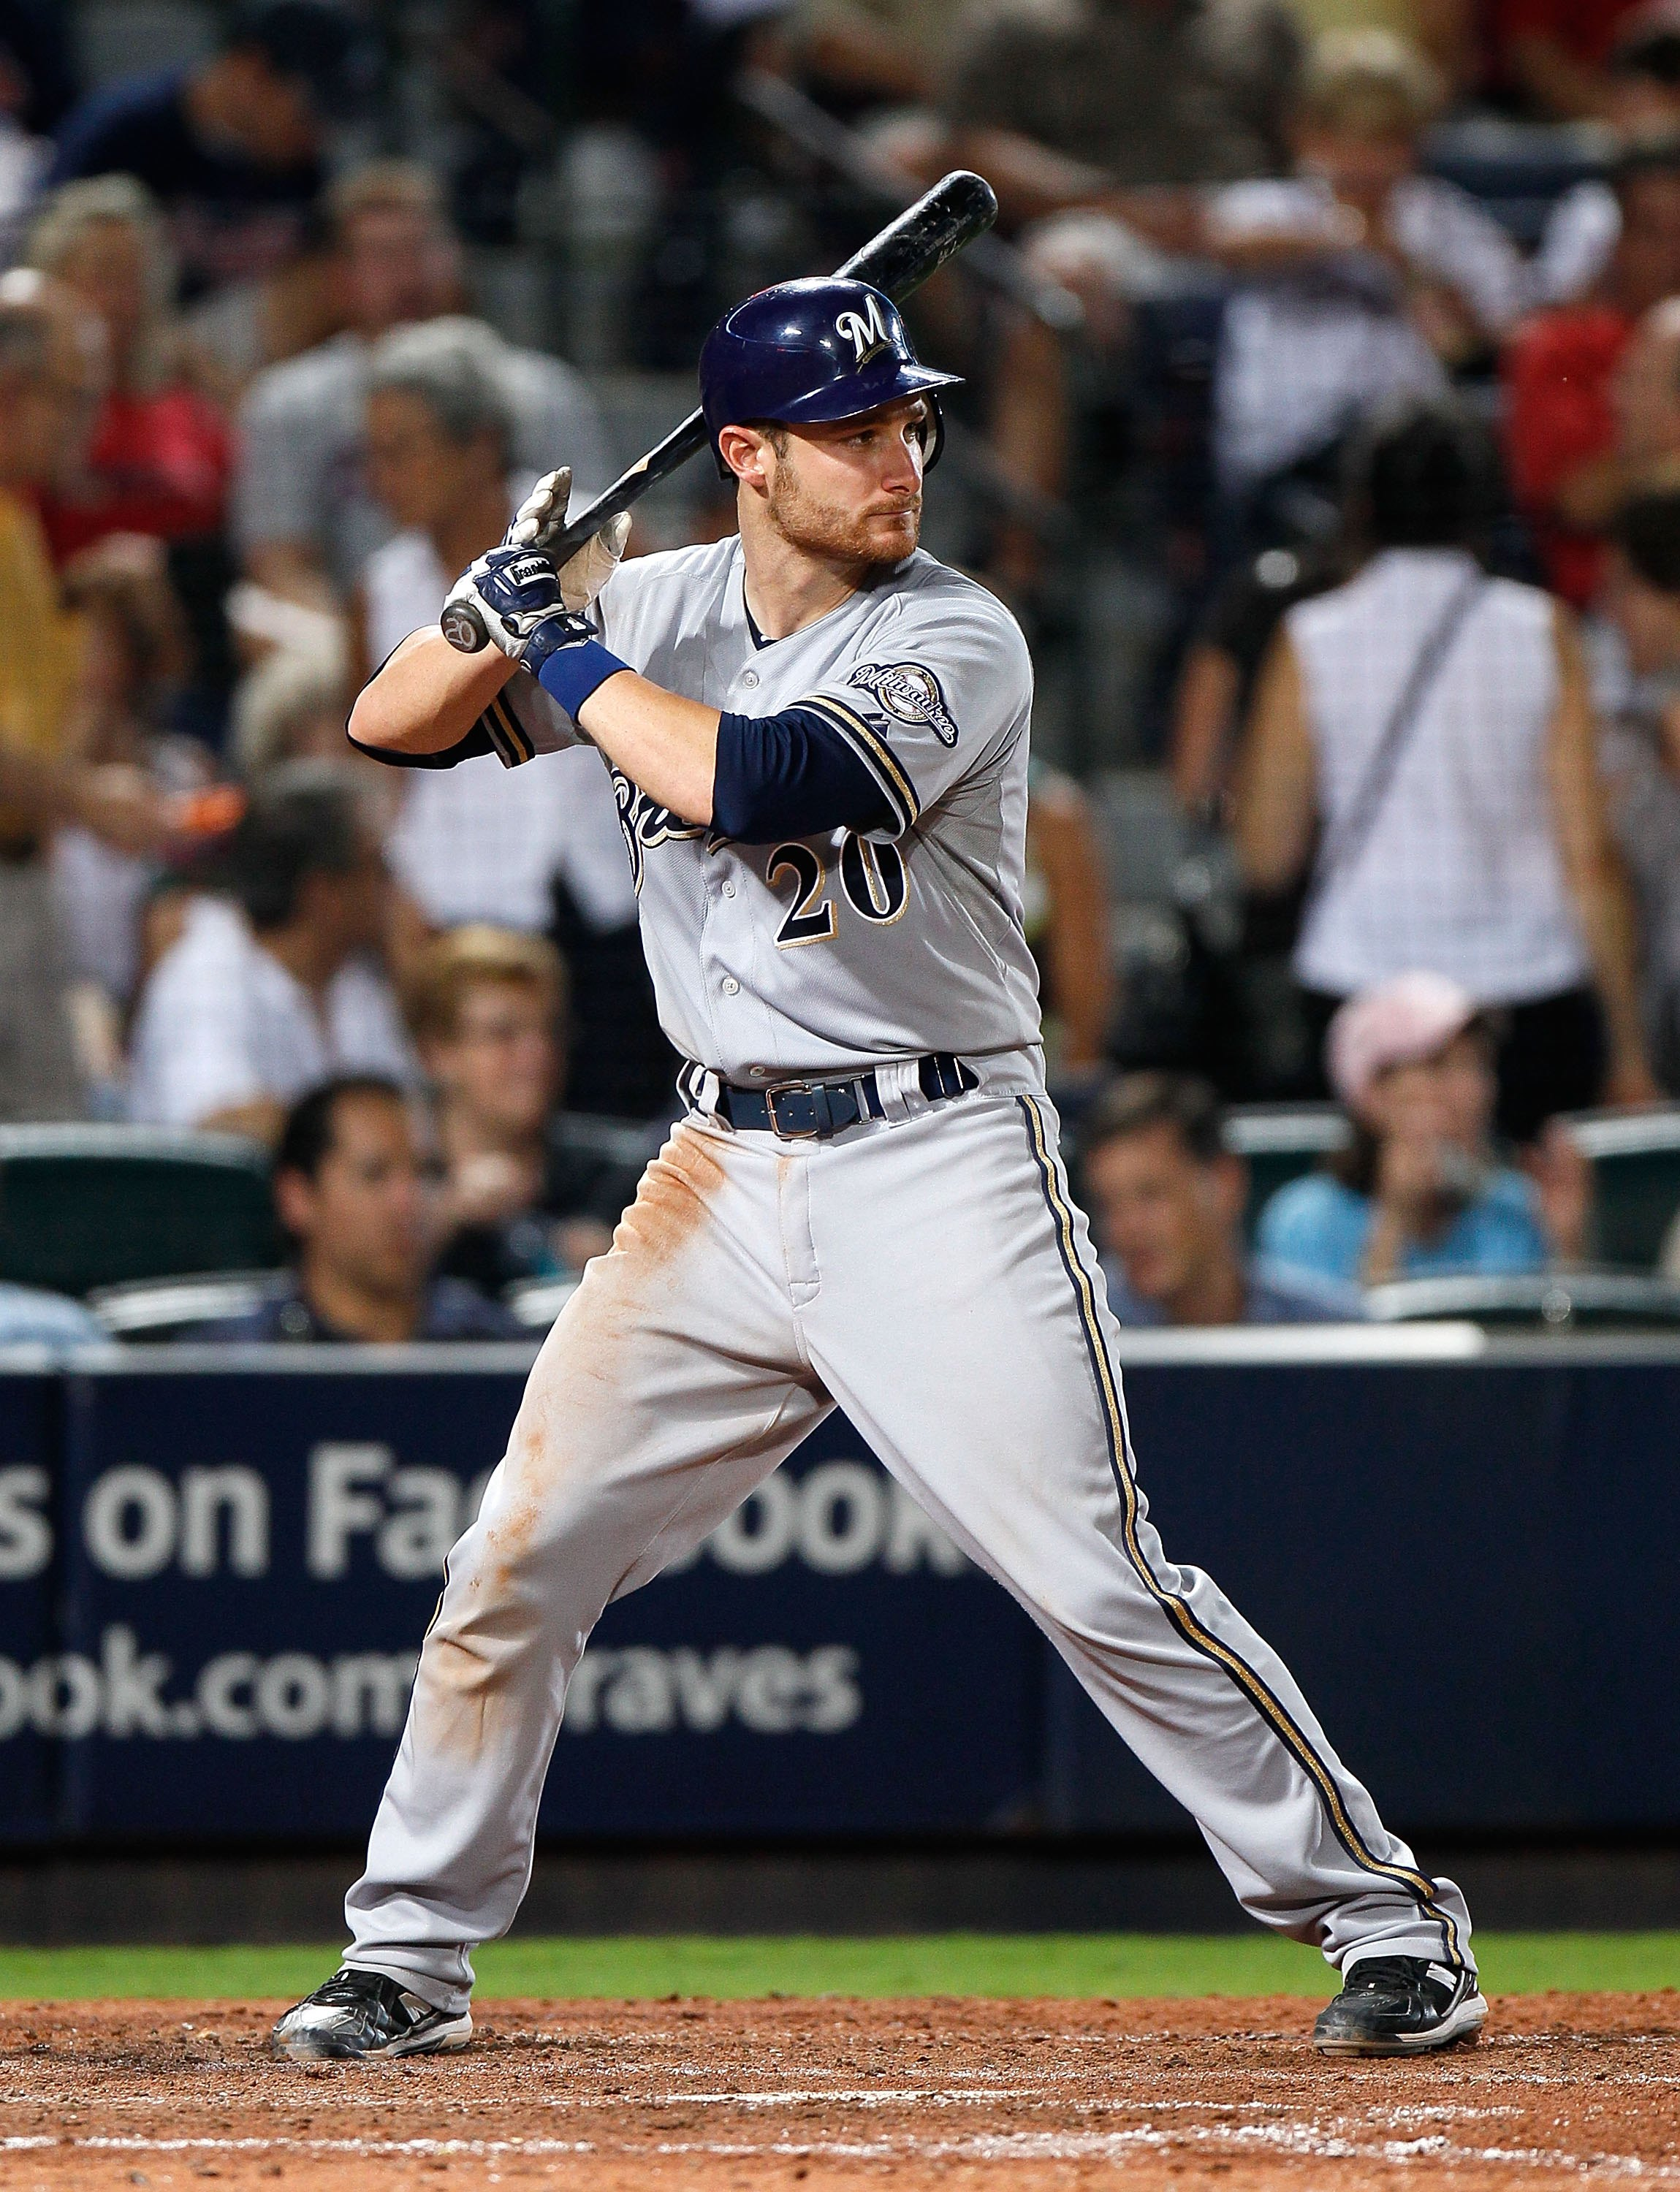 ATLANTA - JULY 15:  Jonathan Lucroy #20 of the Milwaukee Brewers against the Atlanta Braves at Turner Field on July 15, 2010 in Atlanta, Georgia.  (Photo by Kevin C. Cox/Getty Images)